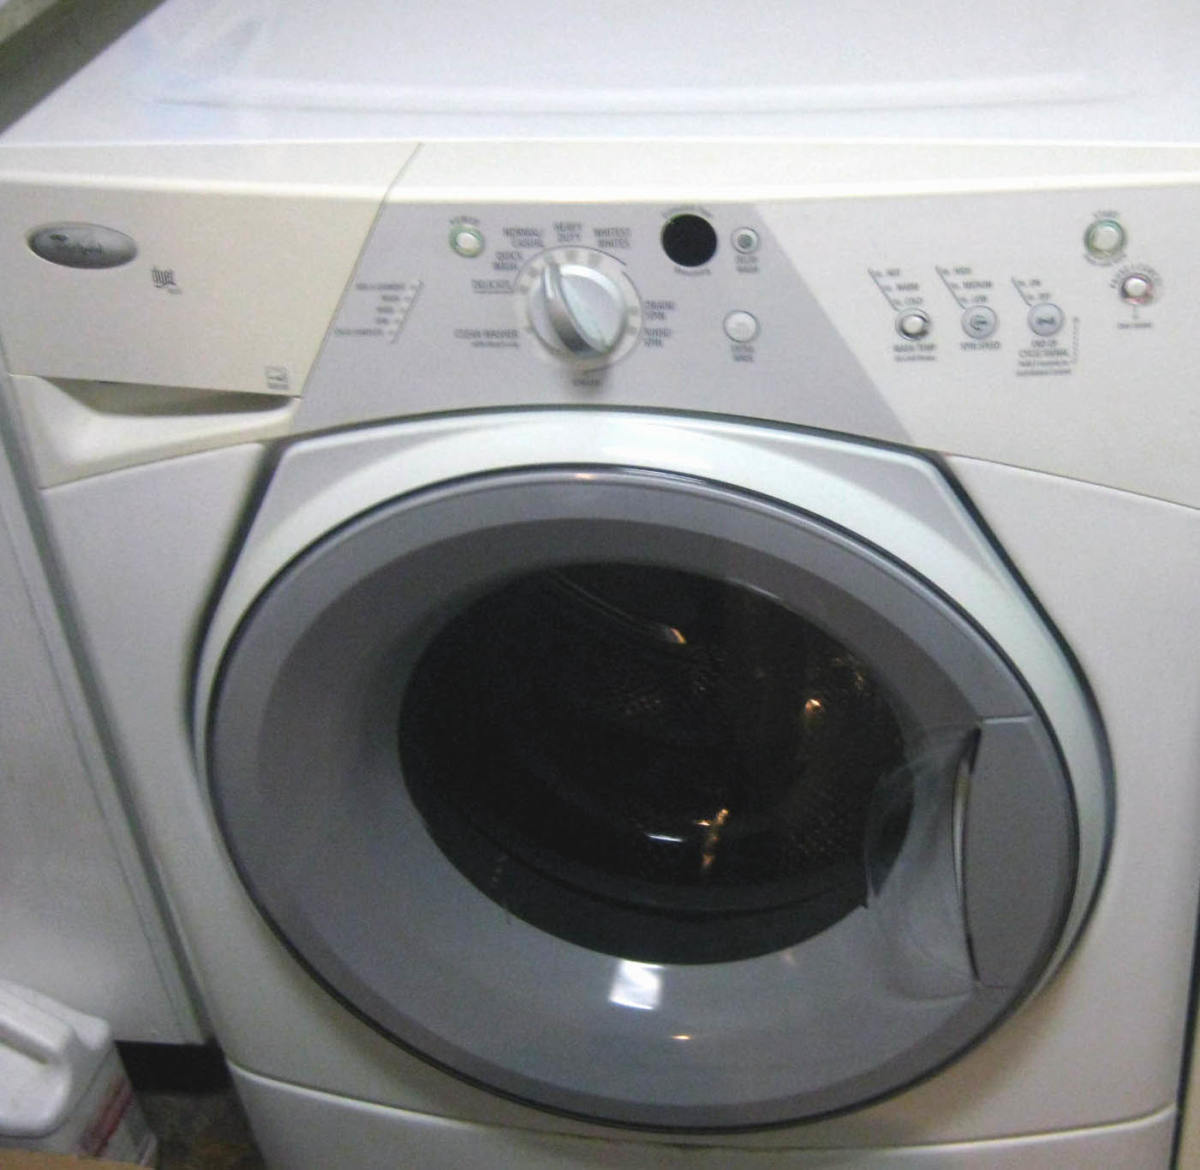 Use hot water and bleach for a sick person's laundry.